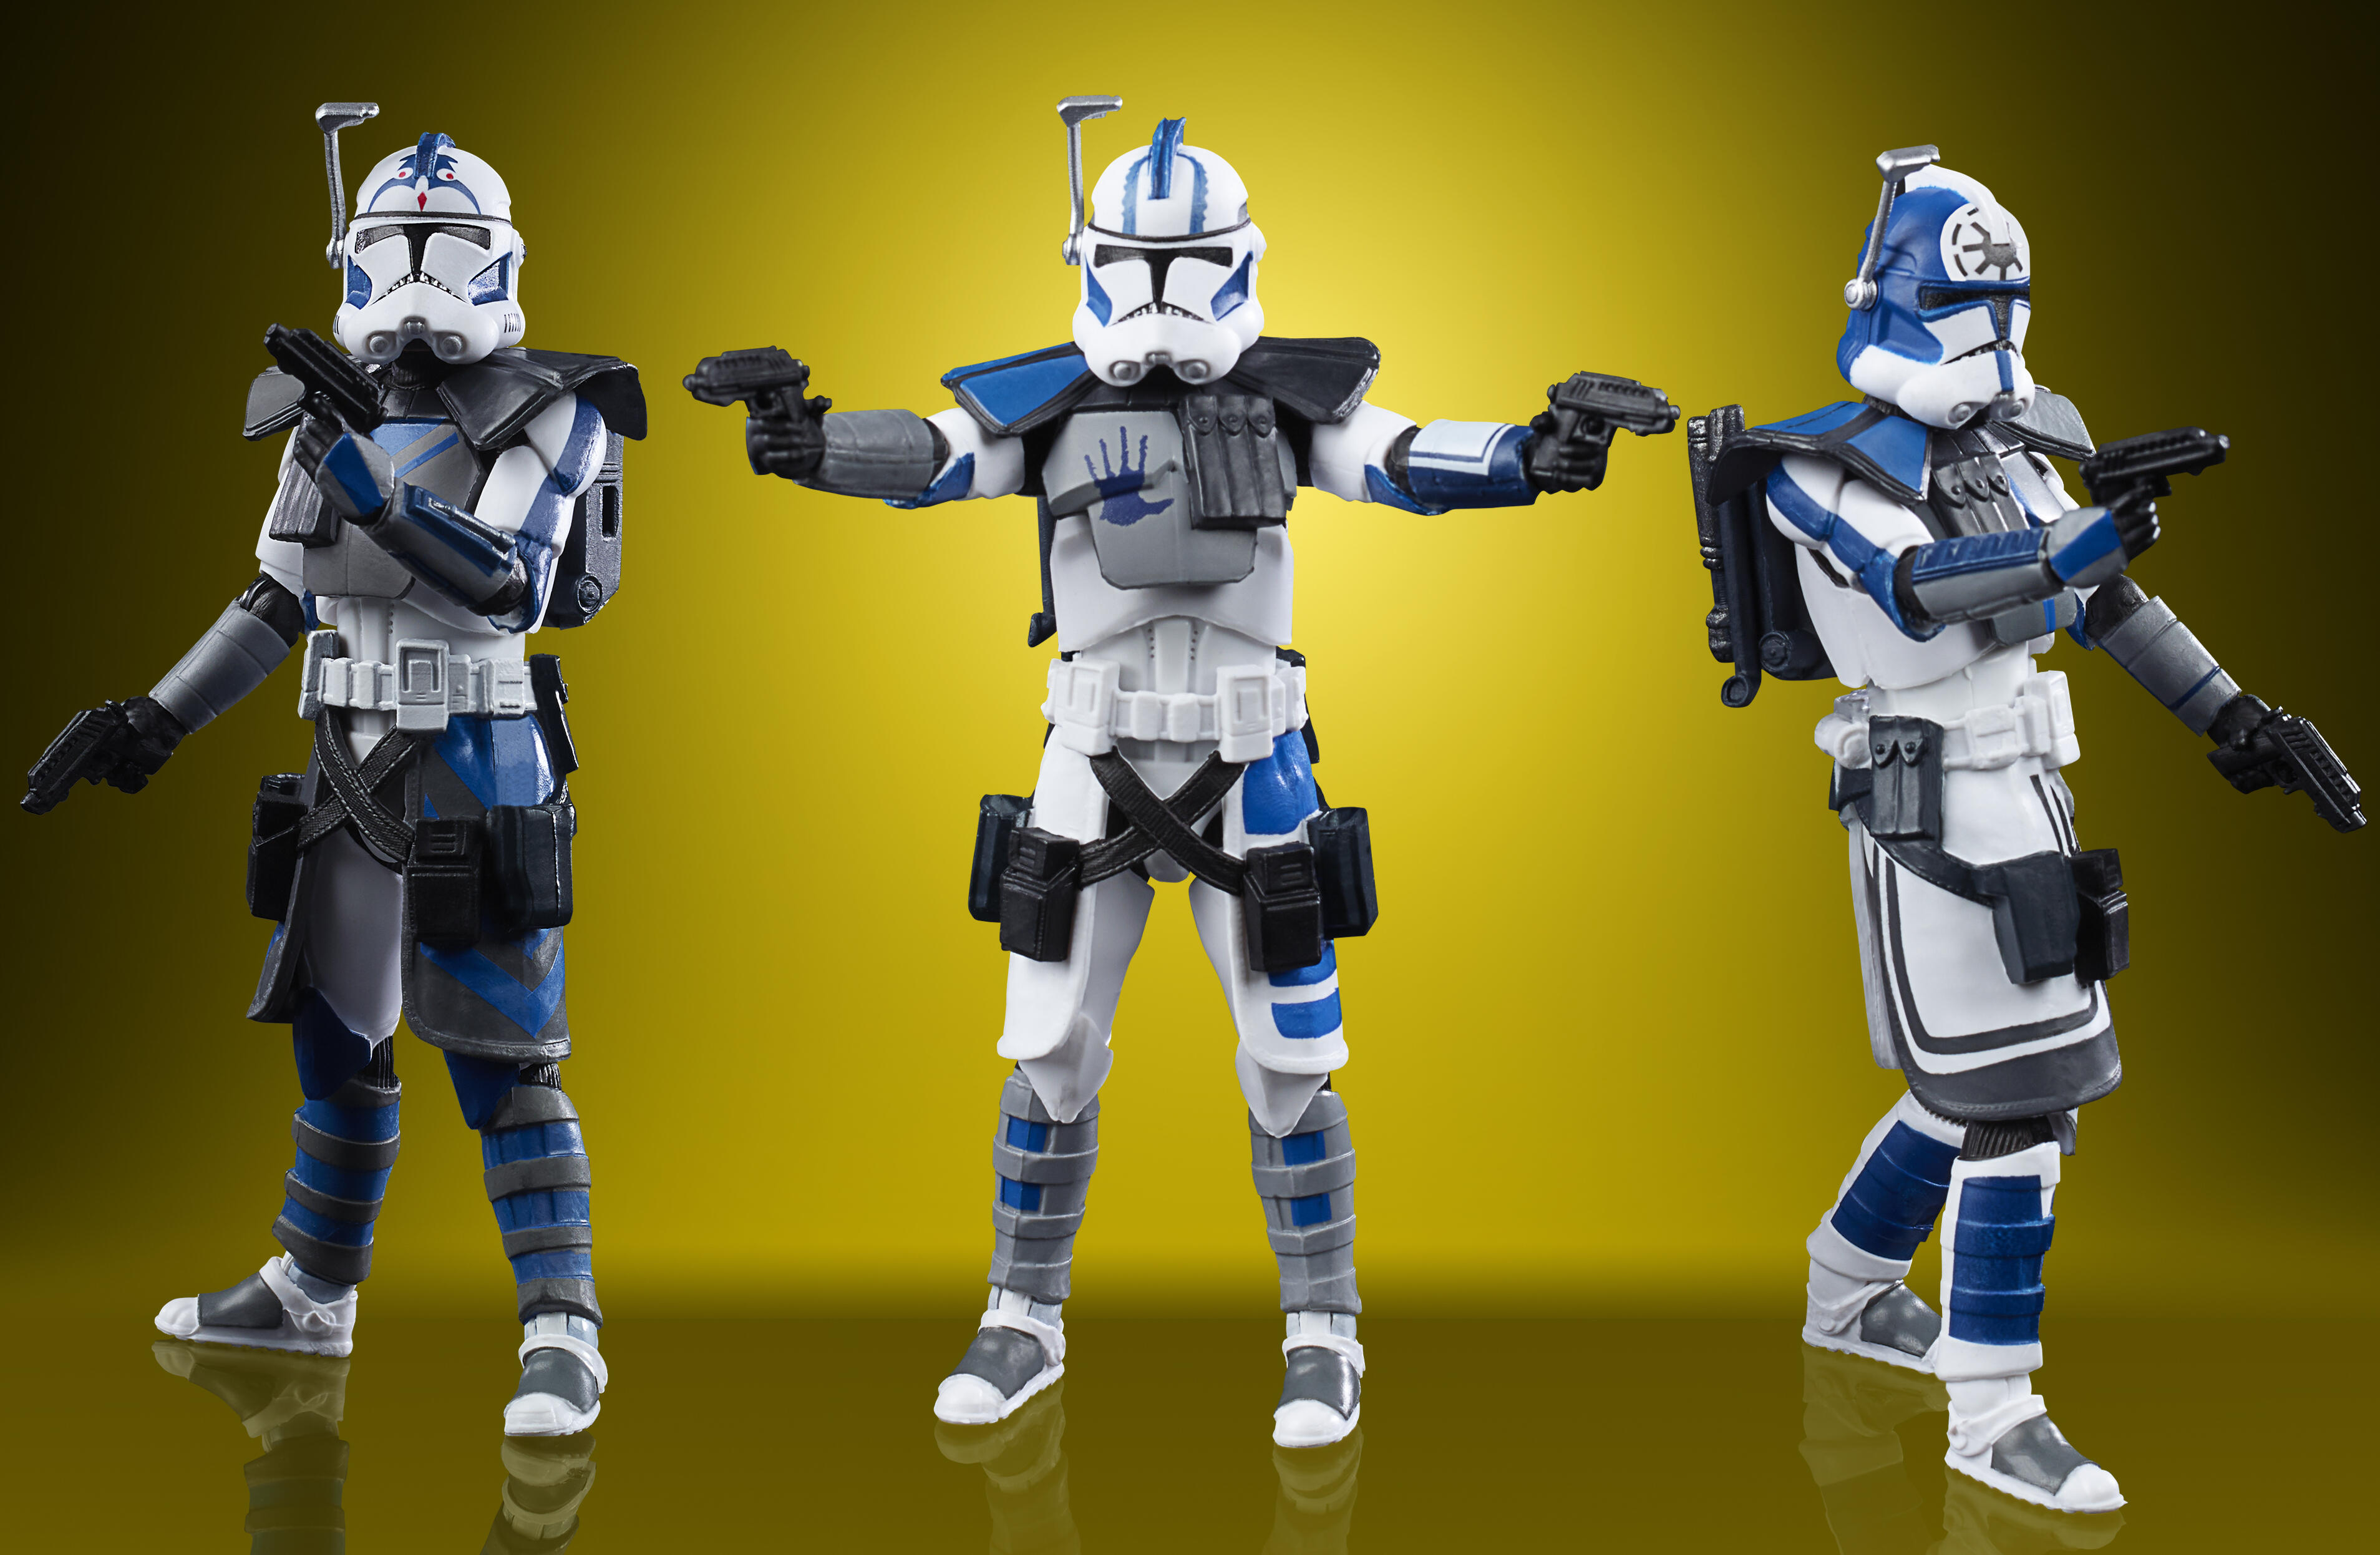 star-wars-the-vintage-collection-star-wars-the-clone-wars-501st-legion-arc-troopers-figure-3-pack-oop-2